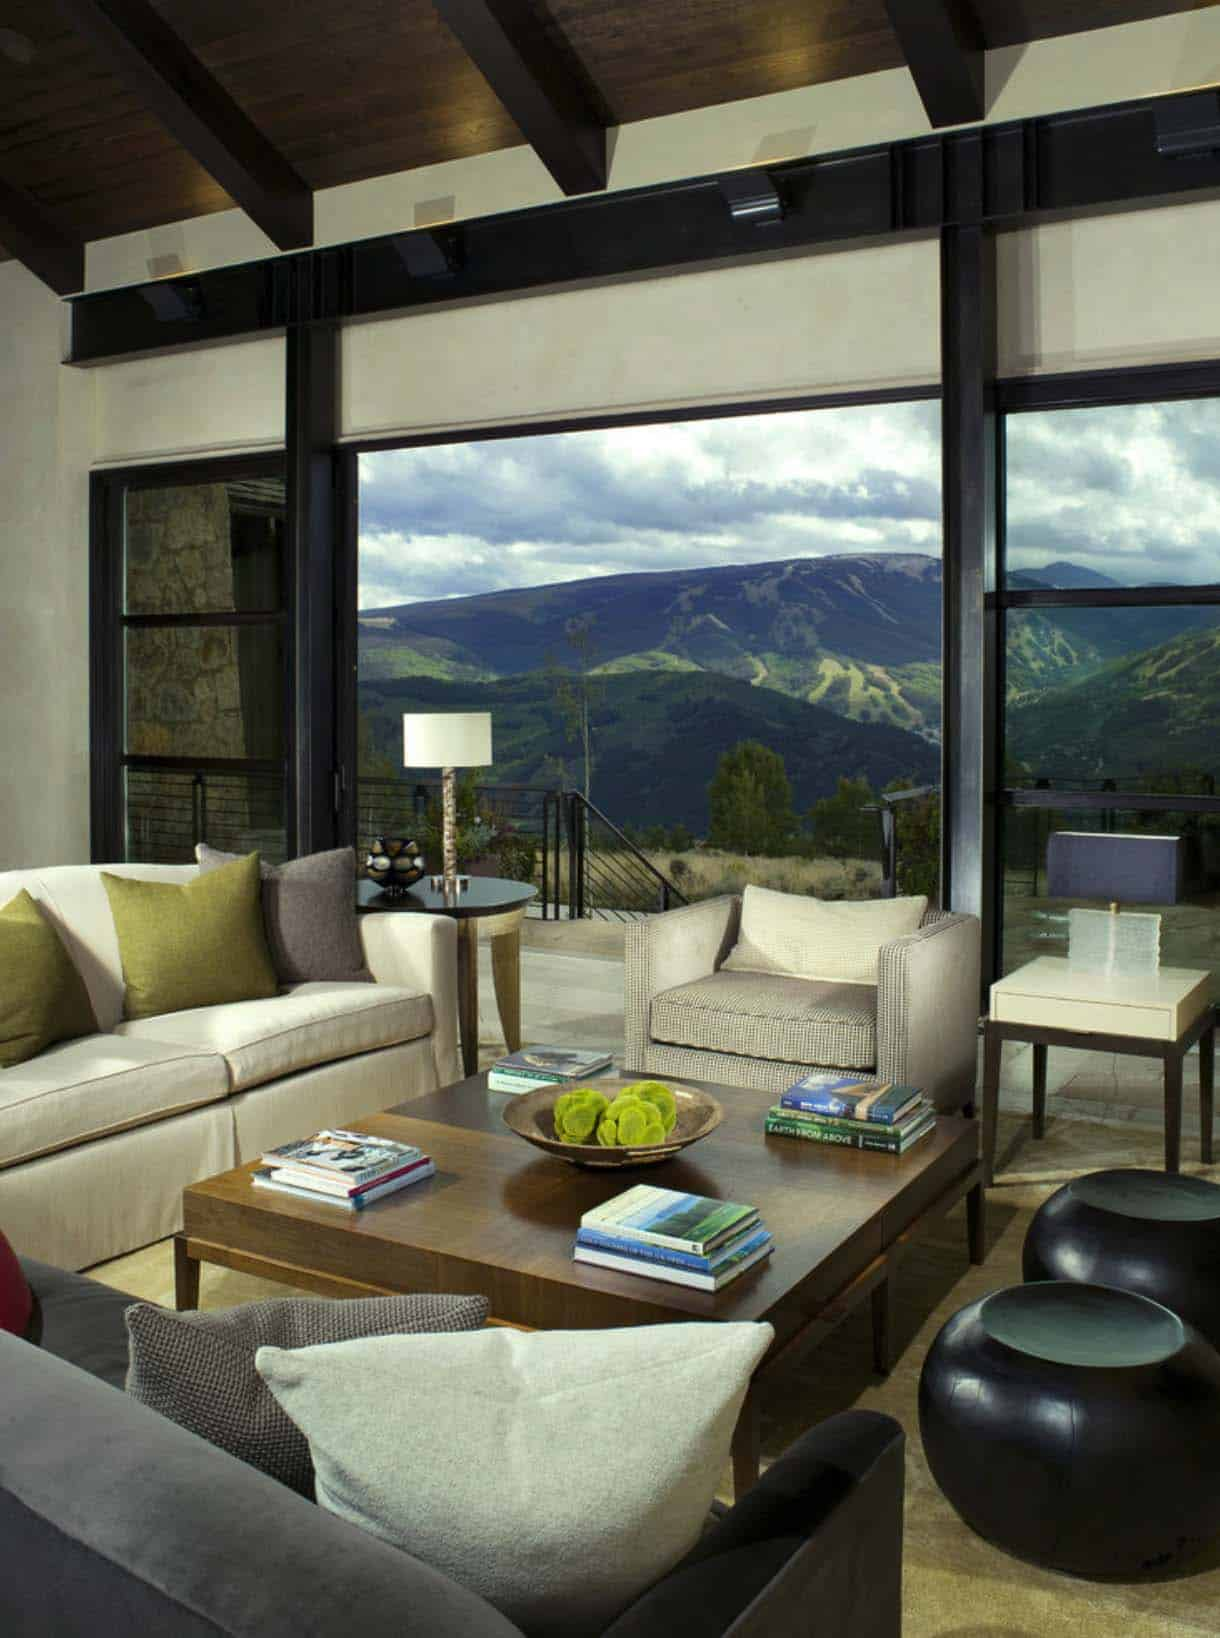 Luxury Modern Mountain Retreat-Slifer Designs-08-1 Kindesign